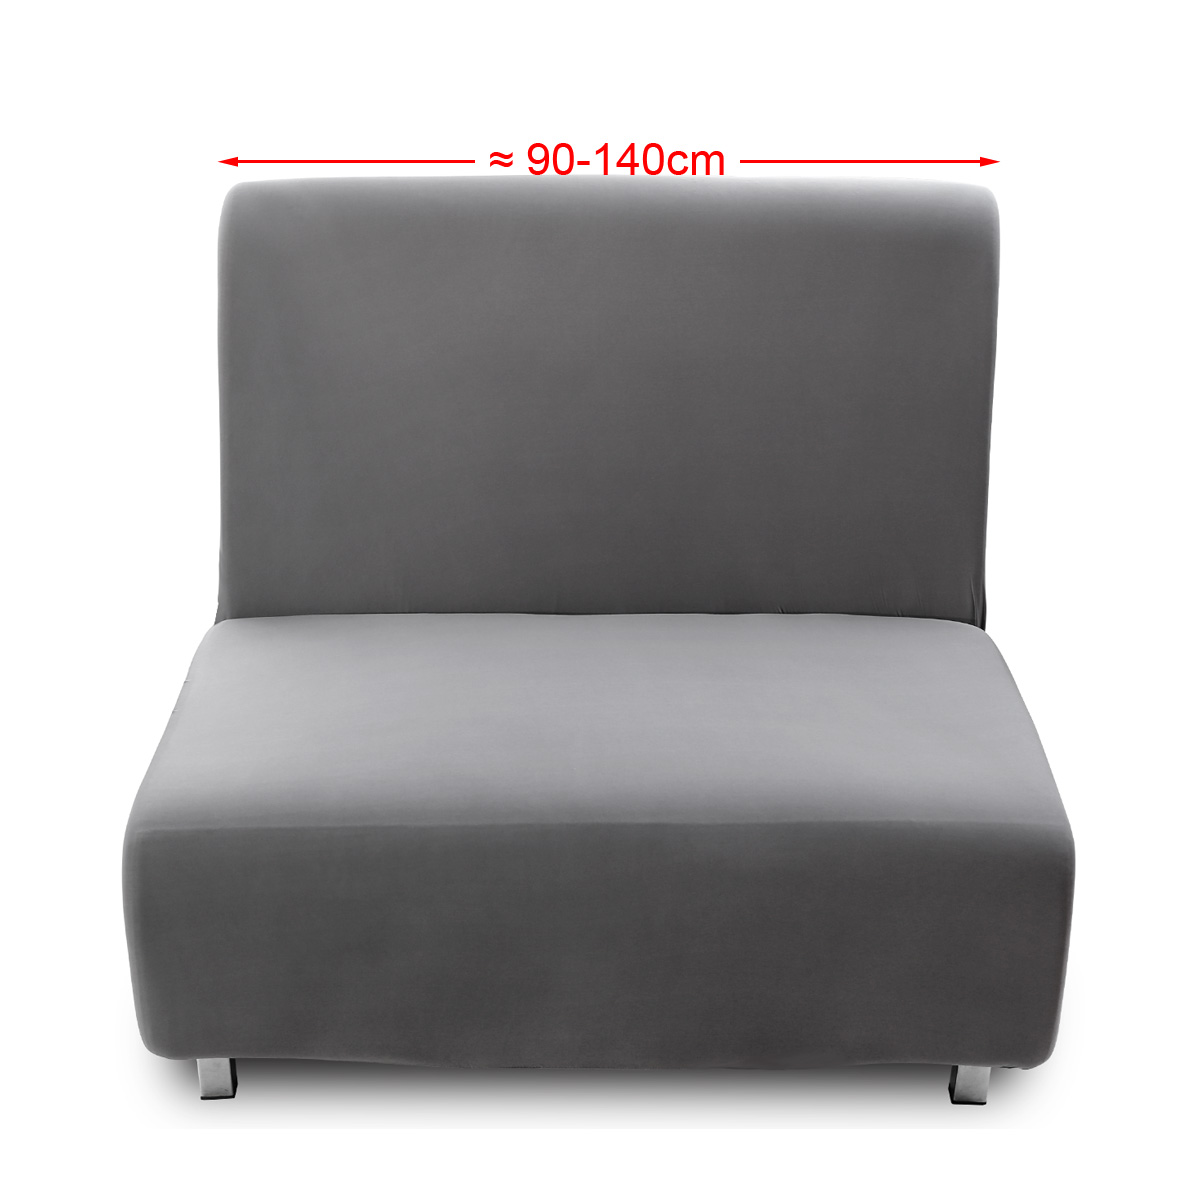 1 2 3er universal sofabezug sitz cover sessel husse berwurf spannbezug ebay. Black Bedroom Furniture Sets. Home Design Ideas